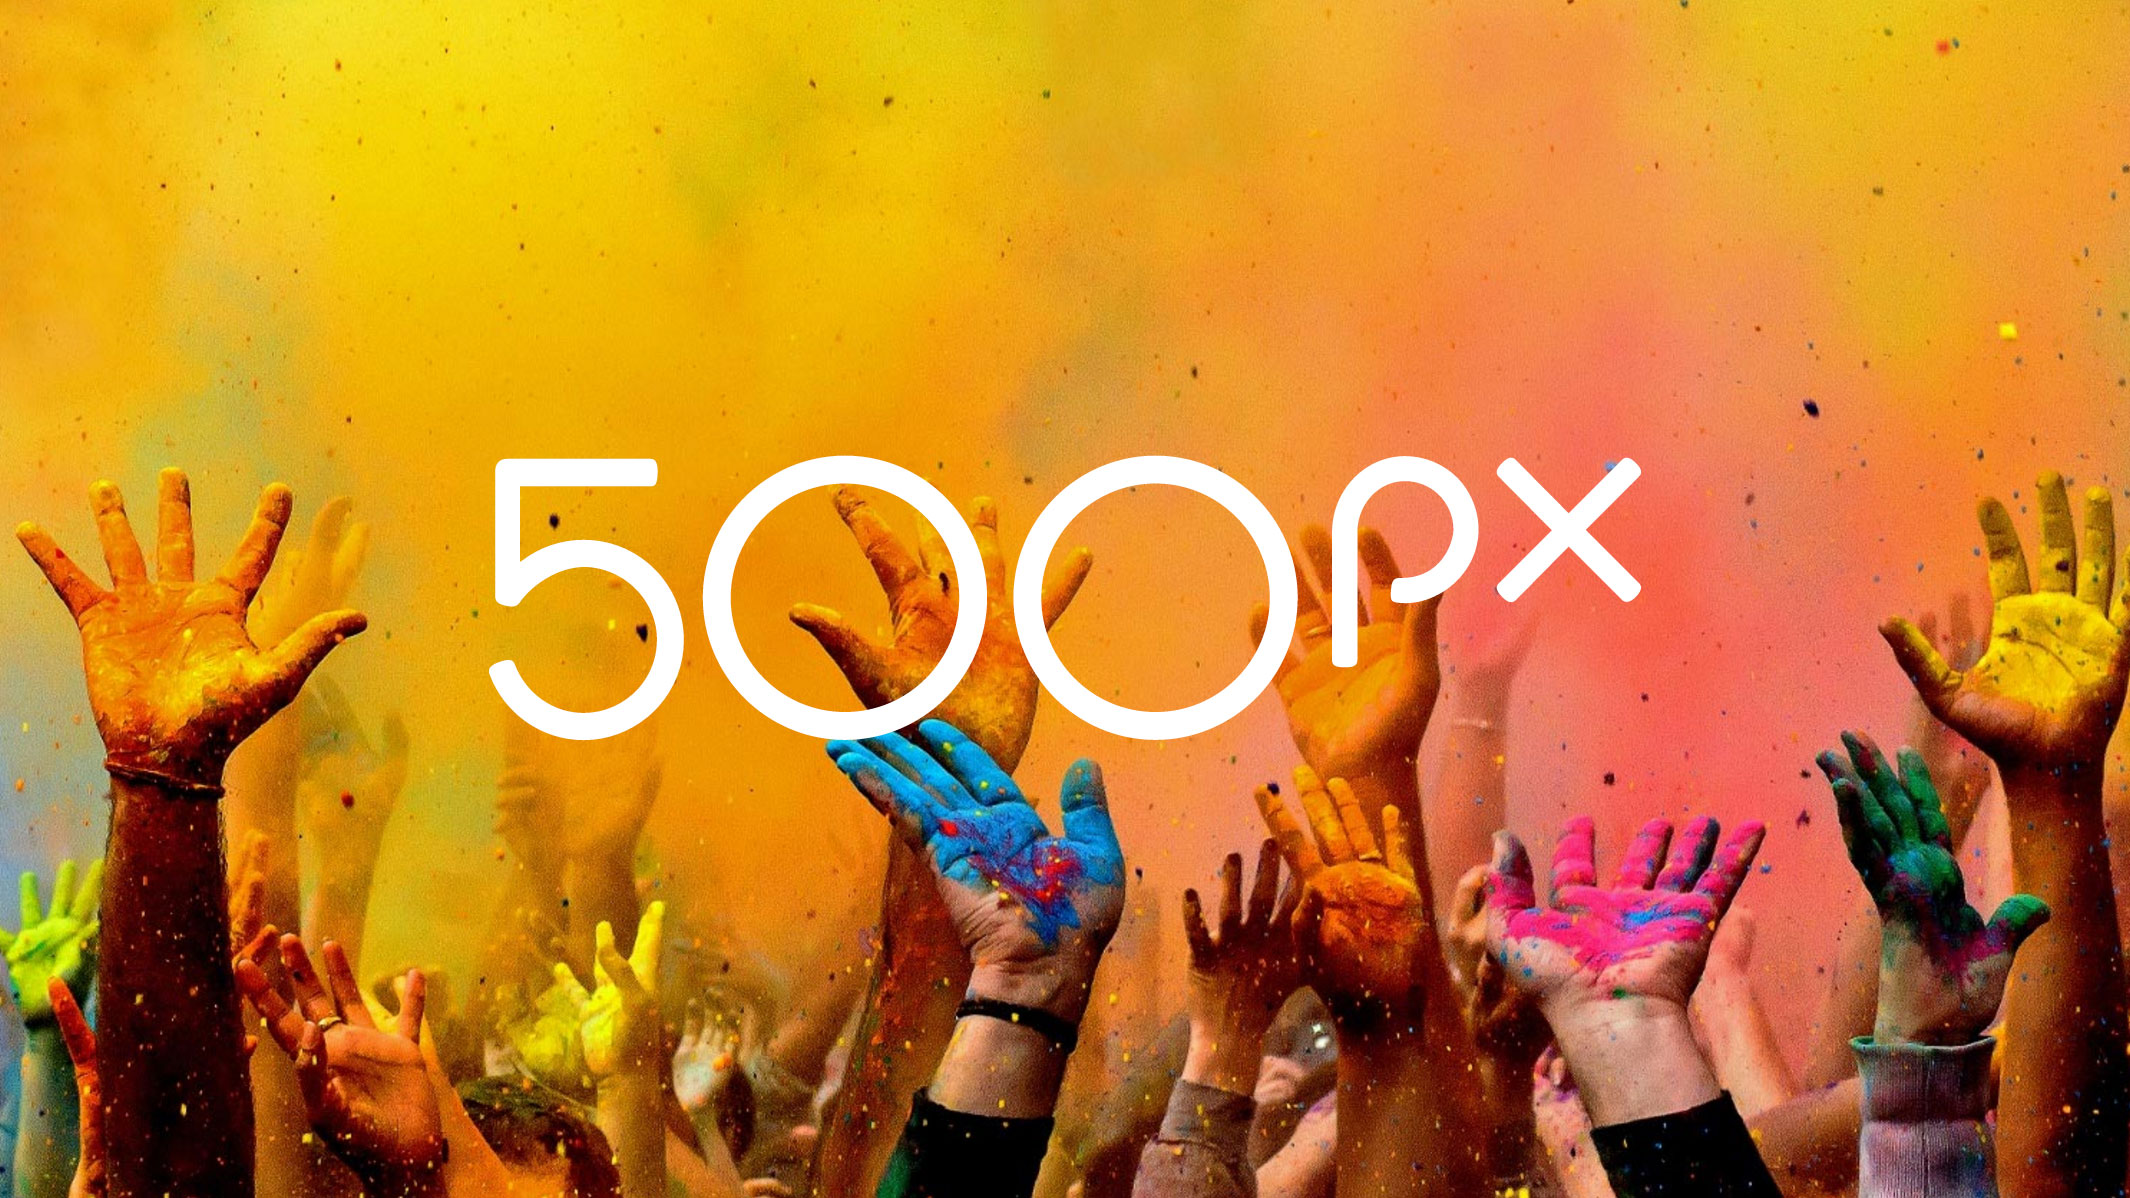 500px nixes Creative Commons option and replaces Marketplace with